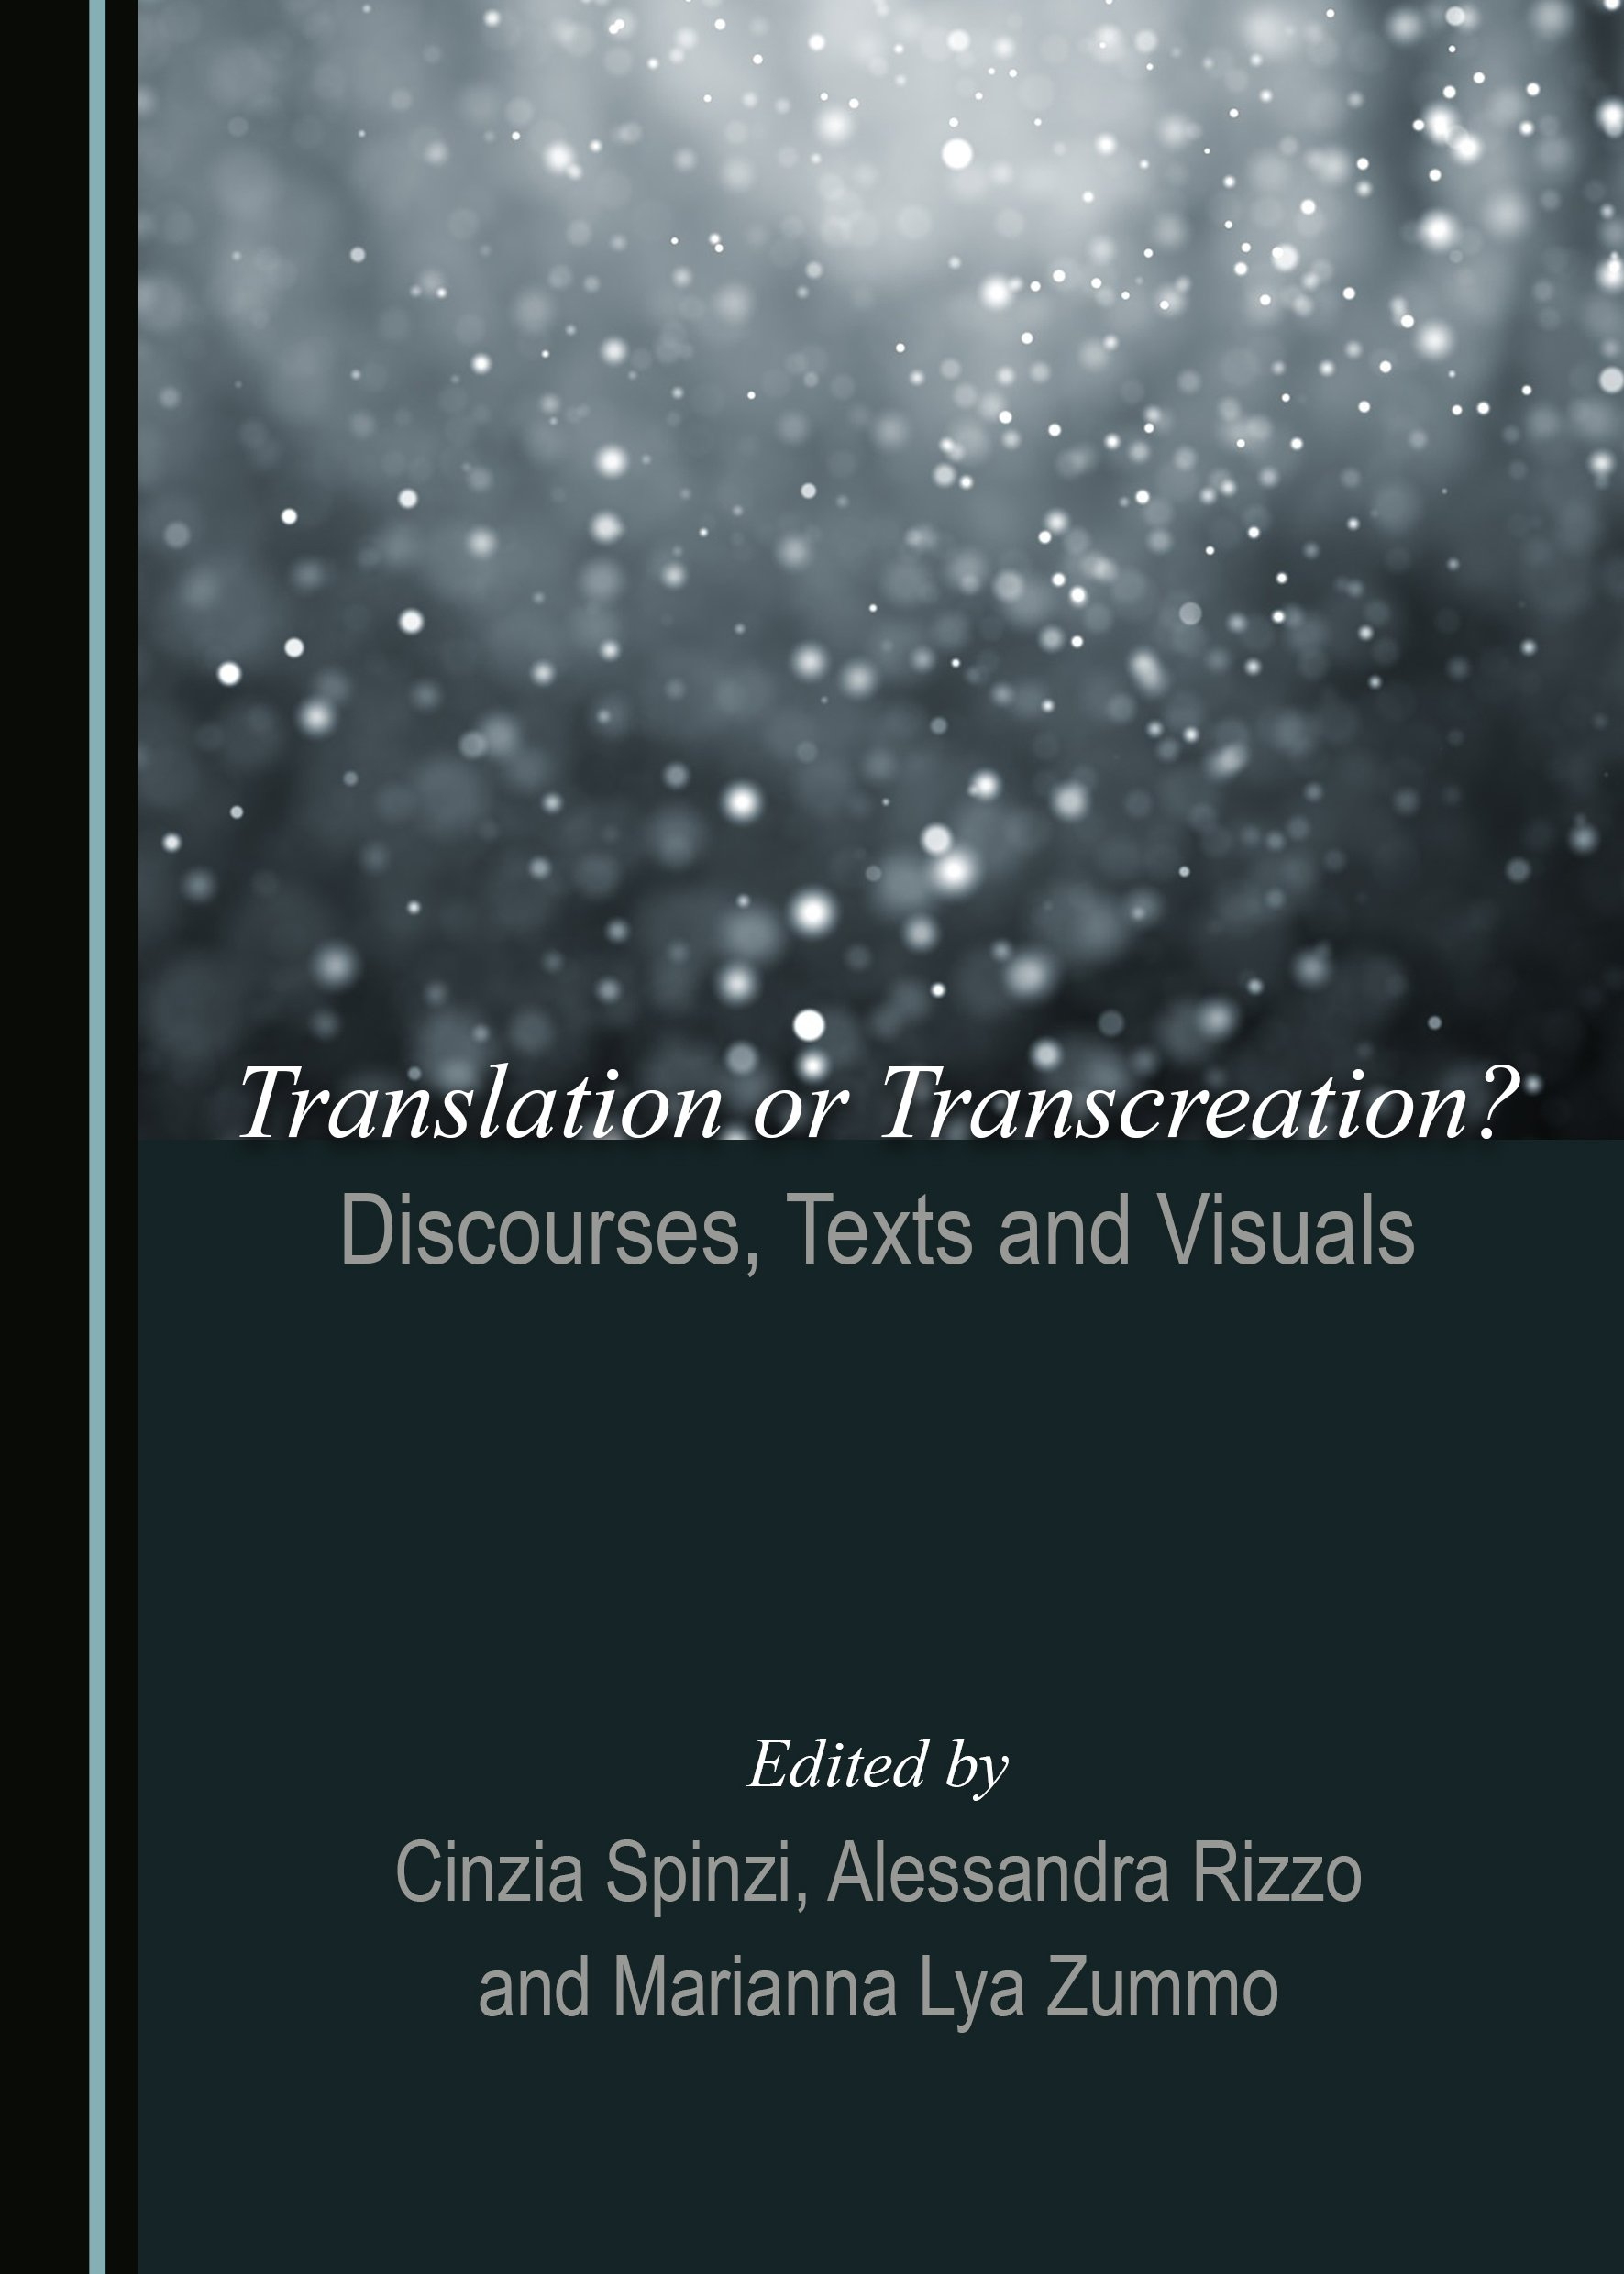 Translation or Transcreation? Discourses, Texts and Visuals